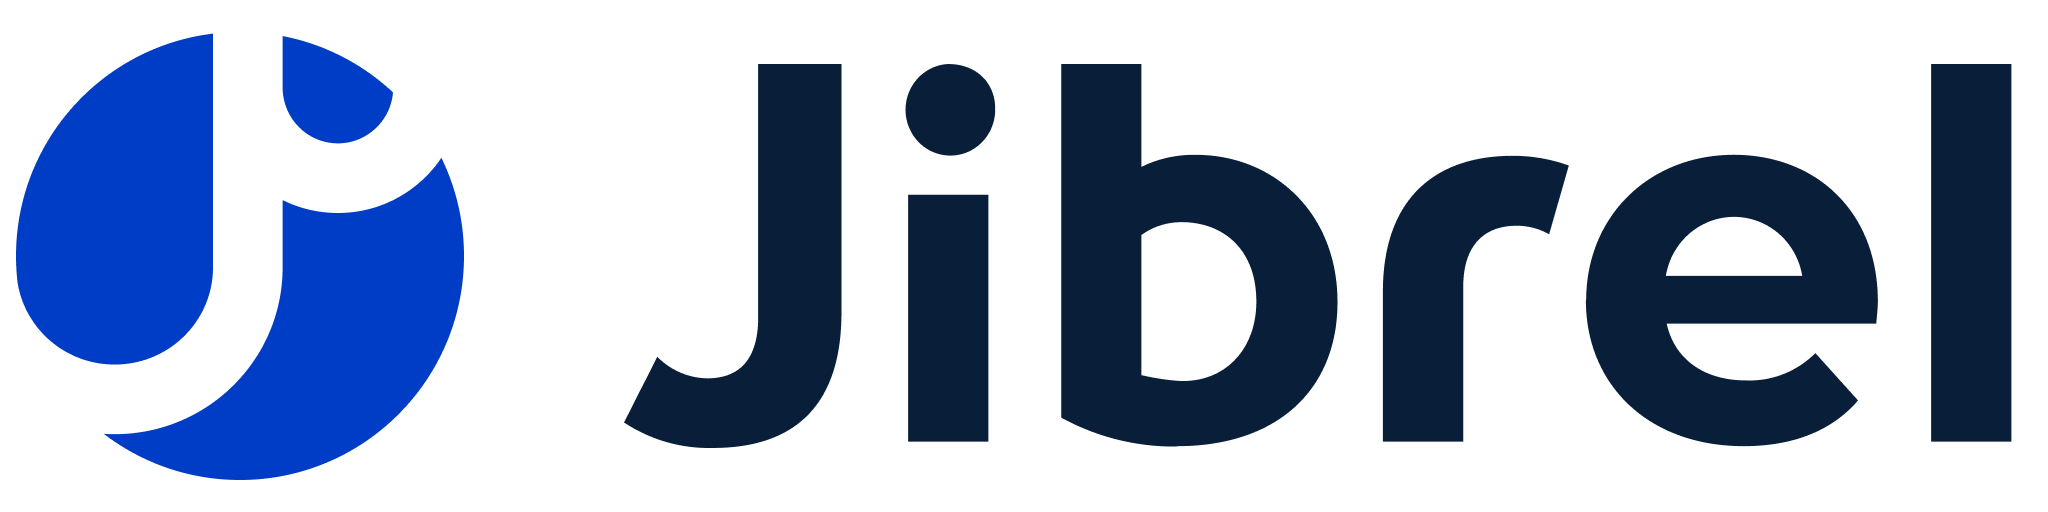 [UPDATED]: Jibrel Partners with Eversheds Sutherland to Bring Tokenized Equities from 6 Startups to Abu Dhabi